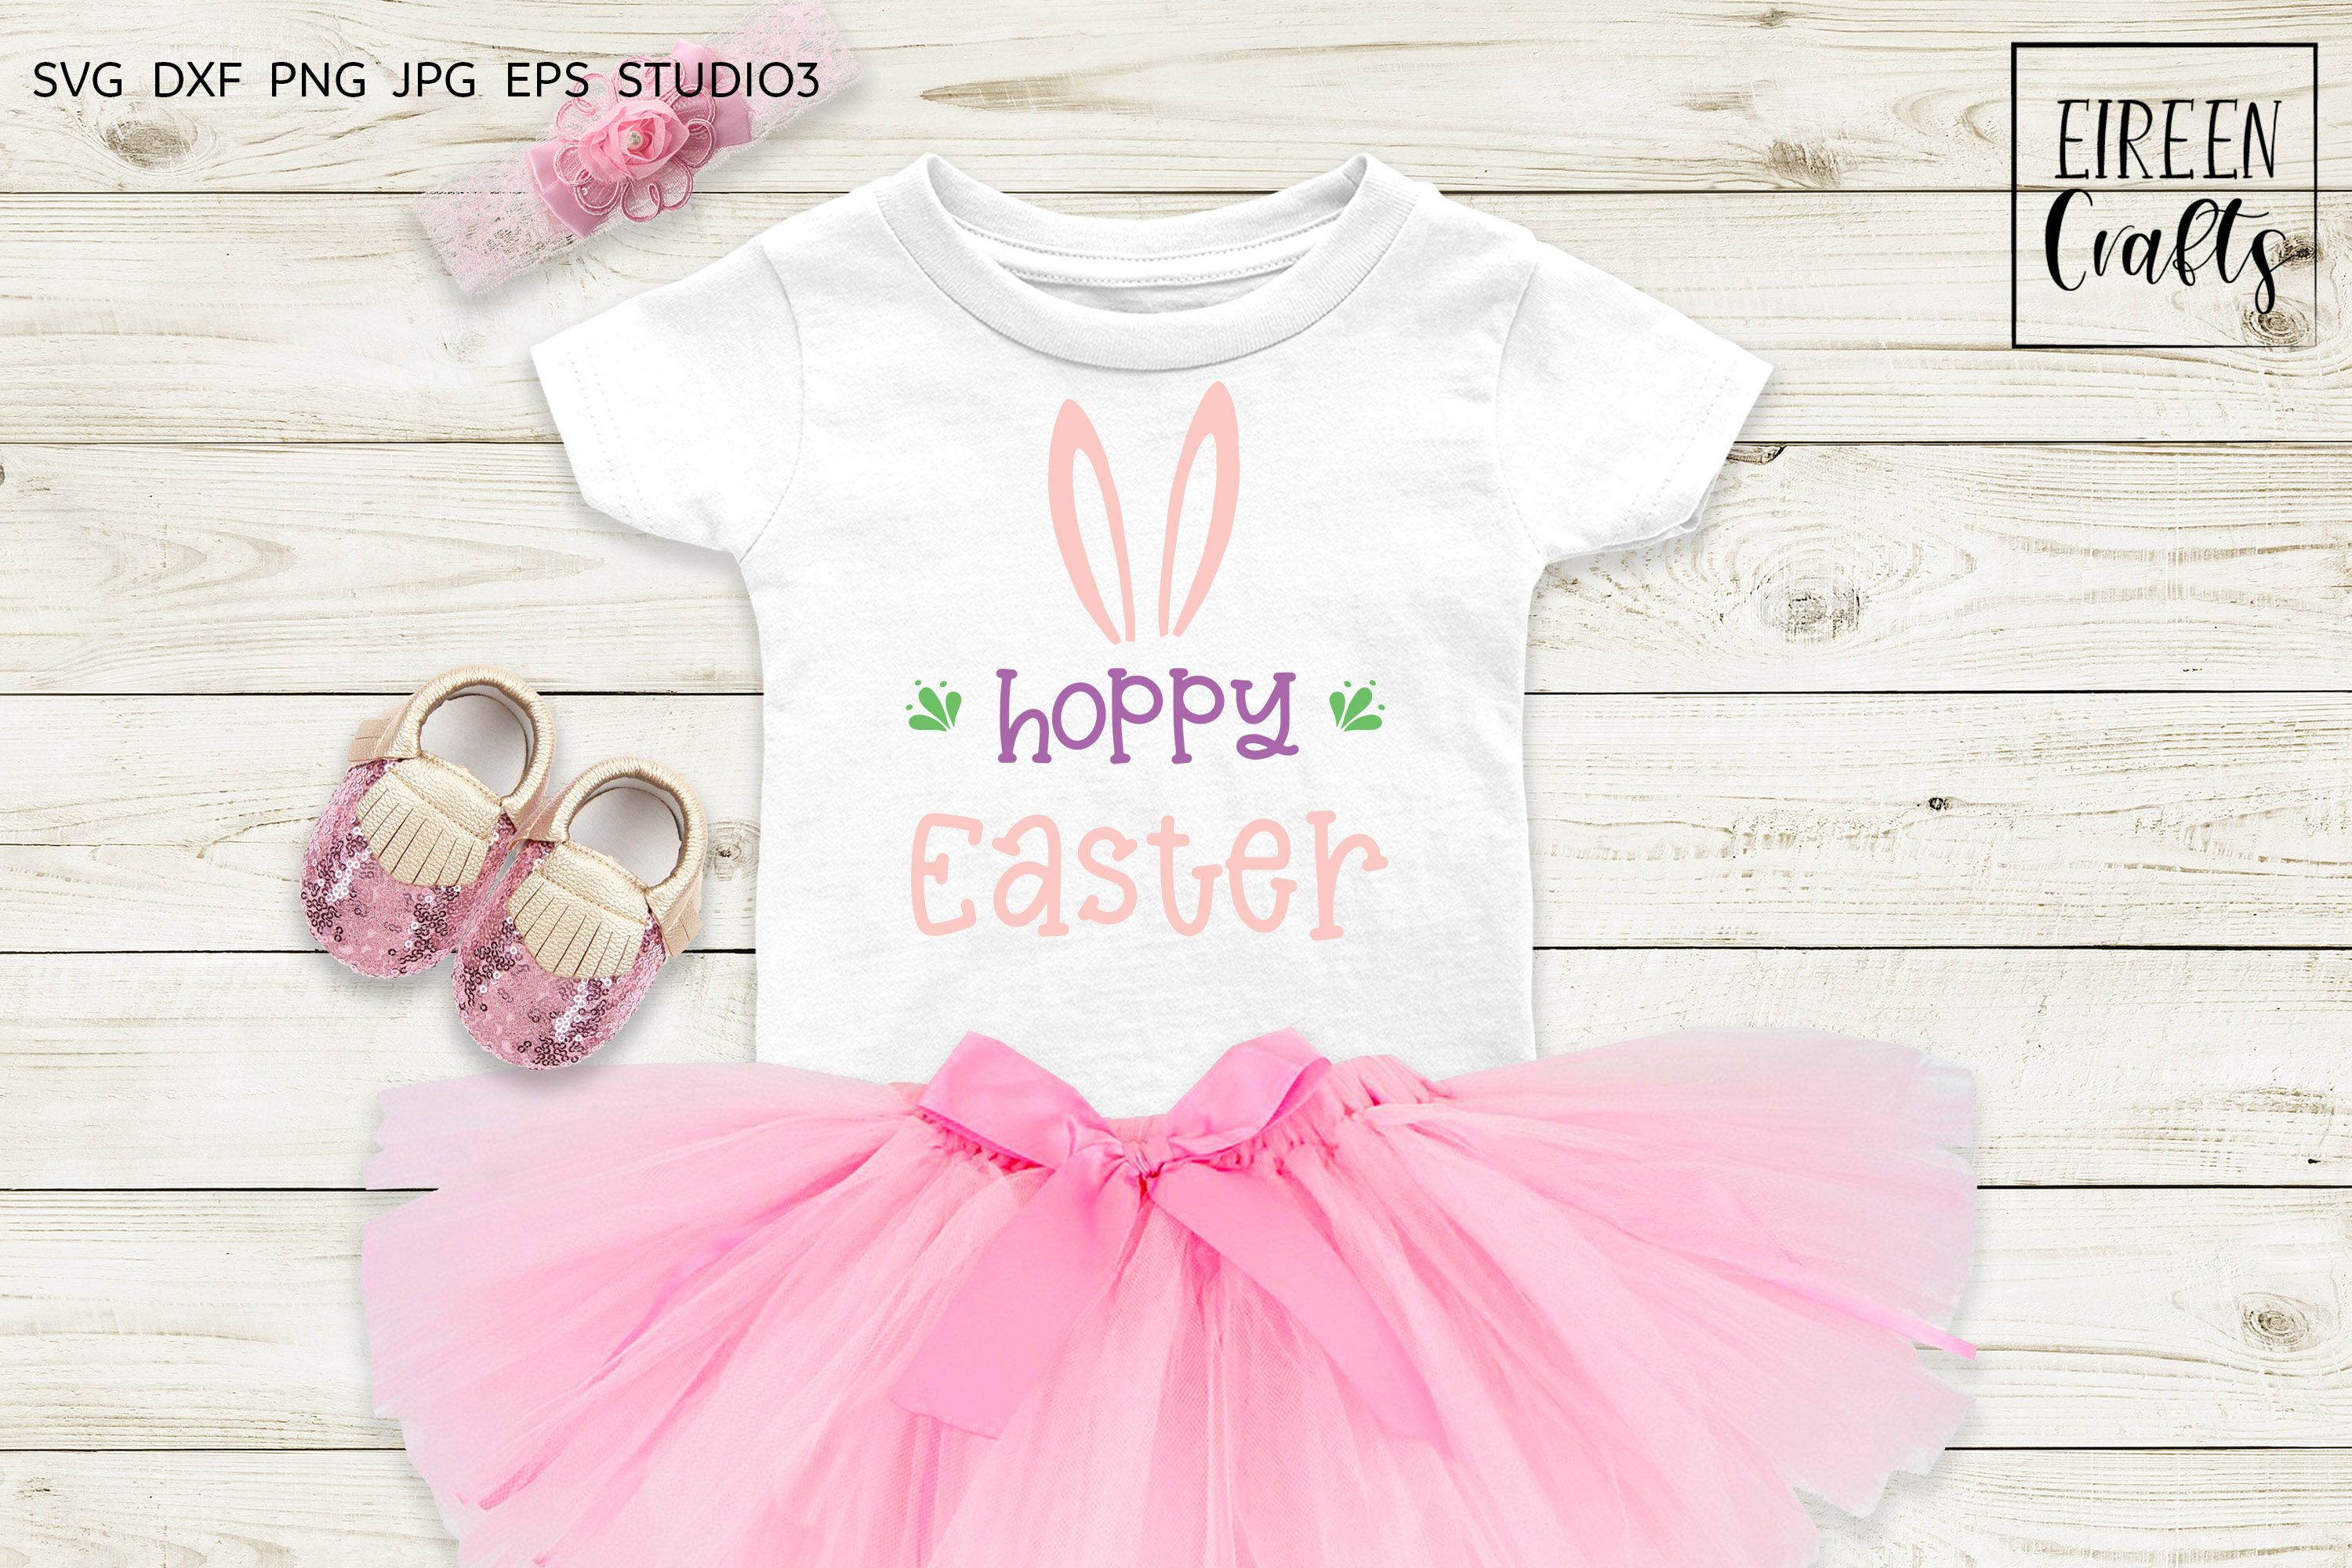 Hoppy Easter SVG - cut file for Cricut & Silhouette example image 1